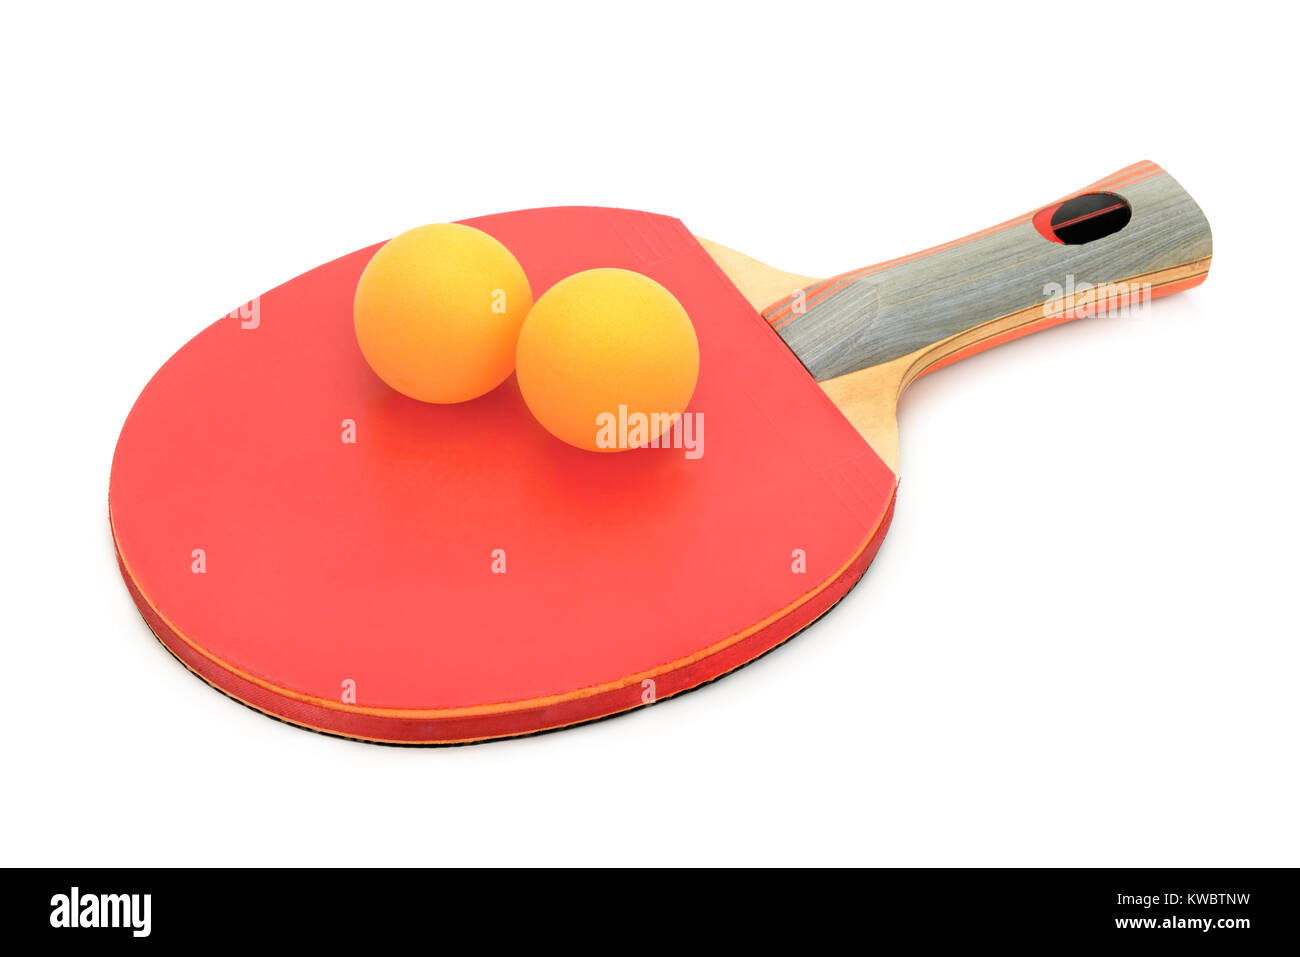 Ping Pong Game Stock Photos Amp Ping Pong Game Stock Images